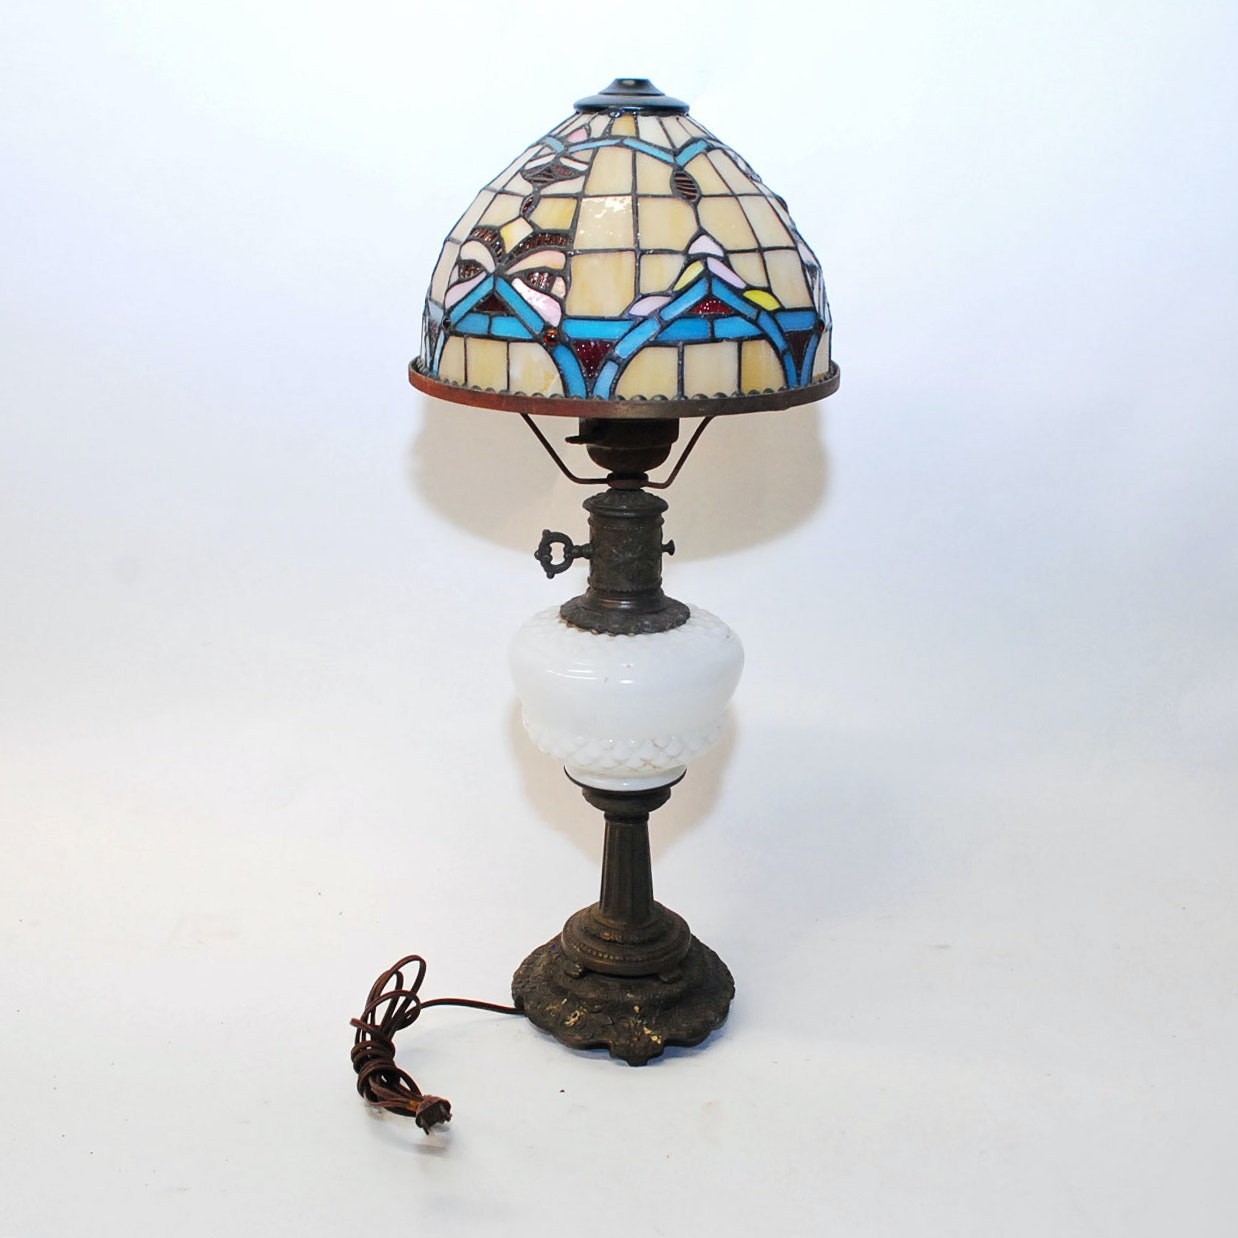 Vintage Parlor Style Lamp with Tiffany Style Shade